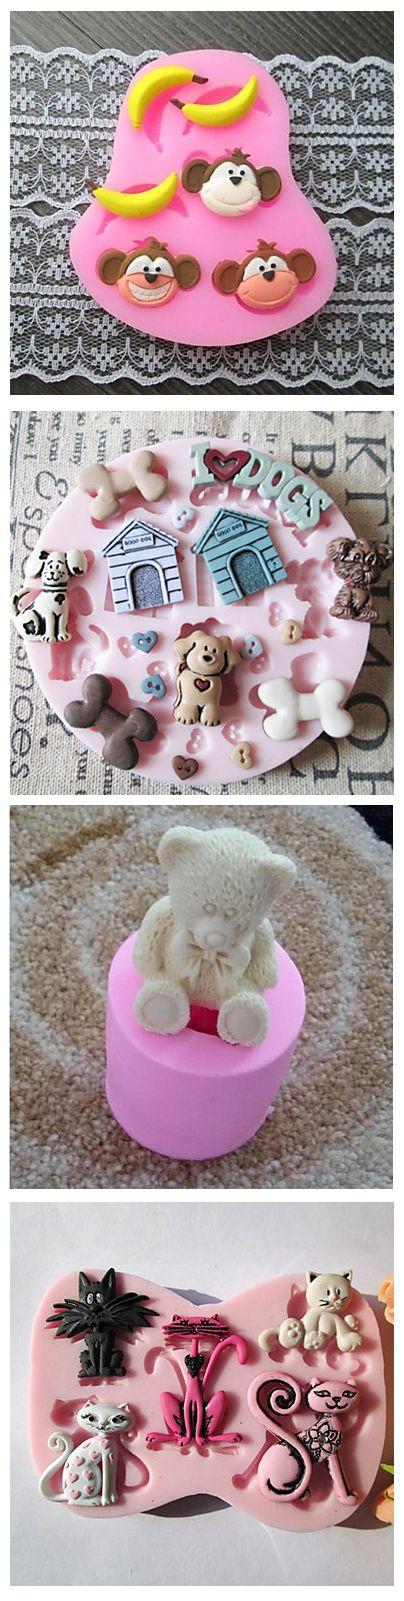 How much do you usually spend on kids birthday cakes? Impress your family by a home-made cake. Use various animal shape baking mold to add creativity to it. Monkeys, dogs, cats, teddy bears and many other cute baking molds are on stock, just click on the picture to see them.